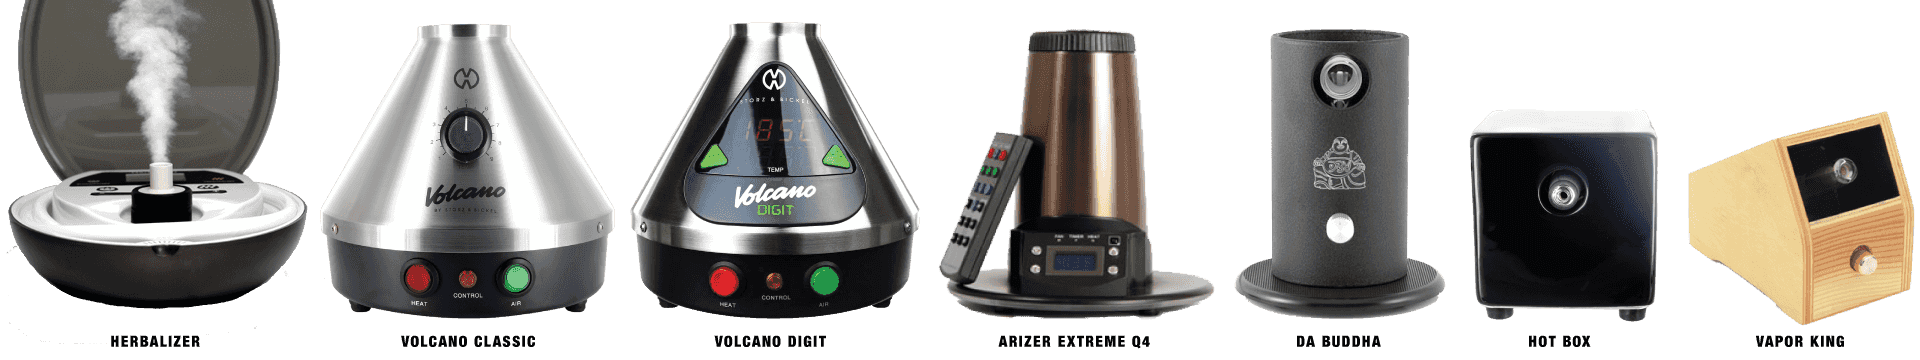 comparing plug-in vaporizers in size and shape